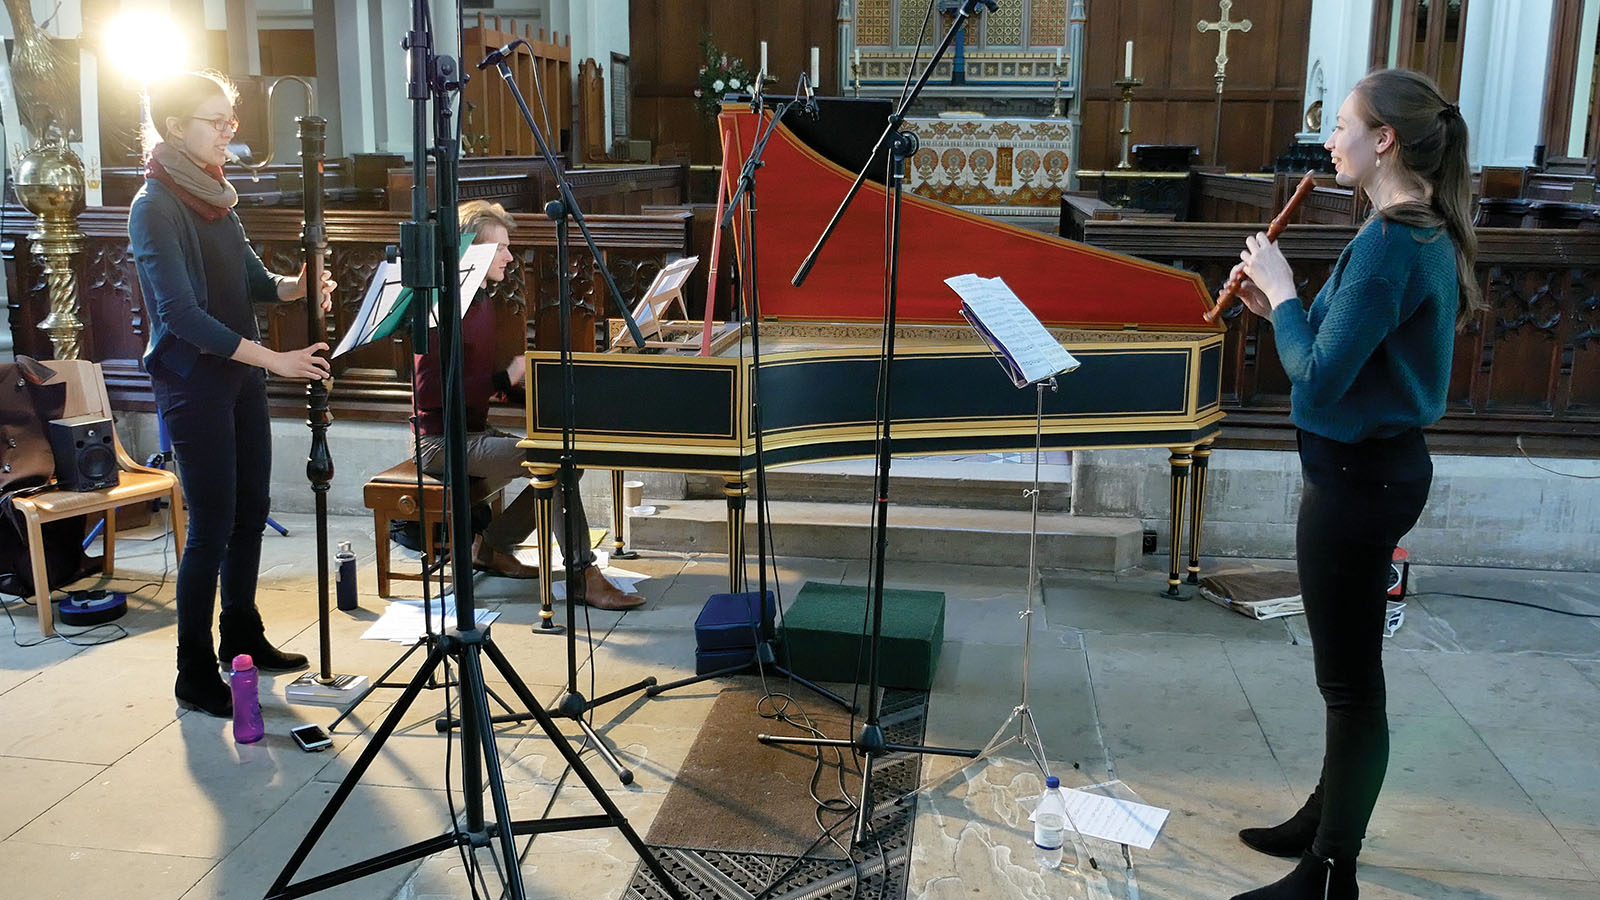 Olwen, Tabea and Nat in the recording session, with instruments and microphones